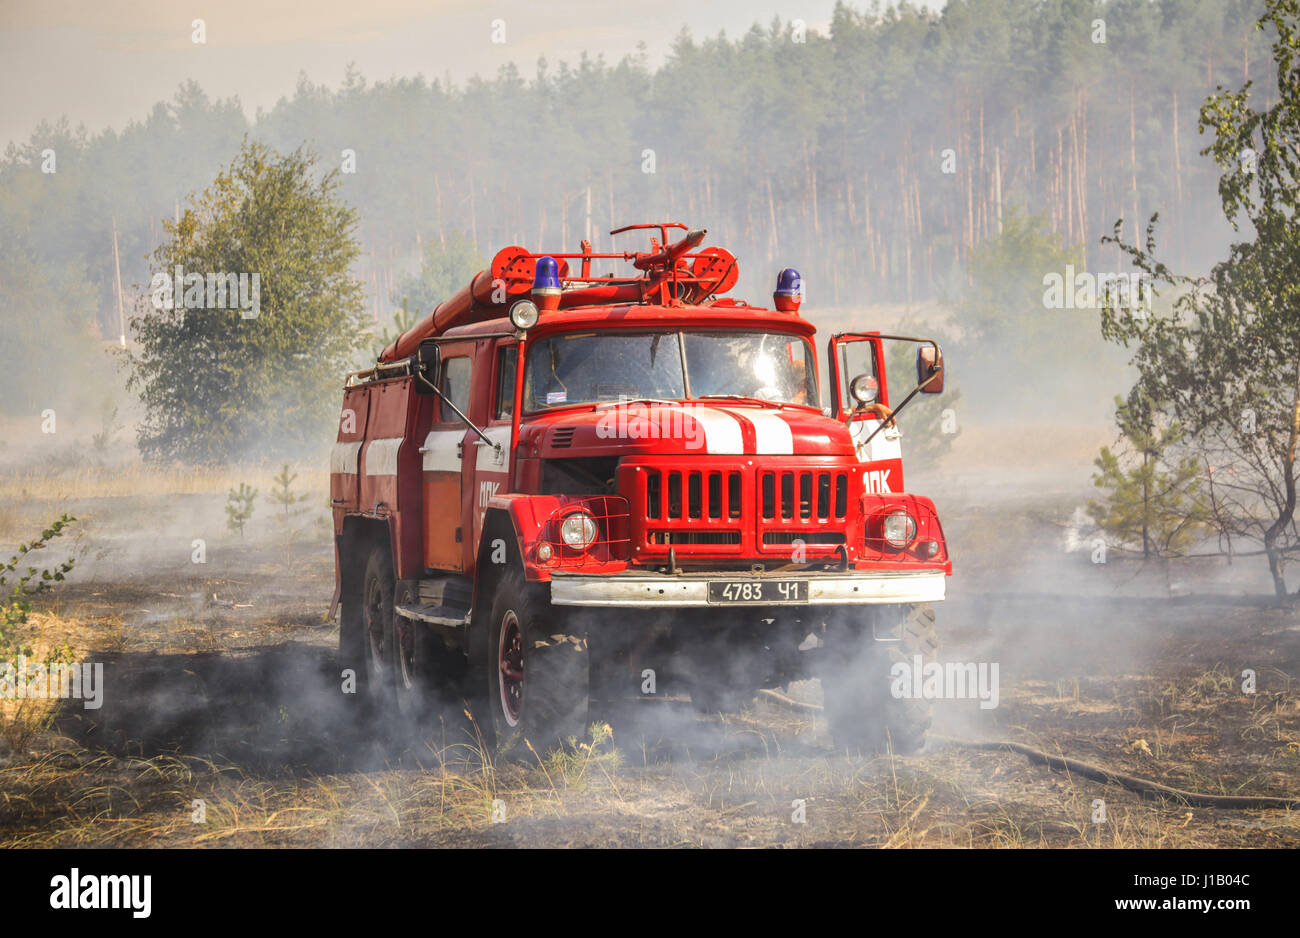 Forest fire due to dry weather in summer, Donbass , Ukraine. A typical USSR firetrack ZIL-131 is on photo. - Stock Image